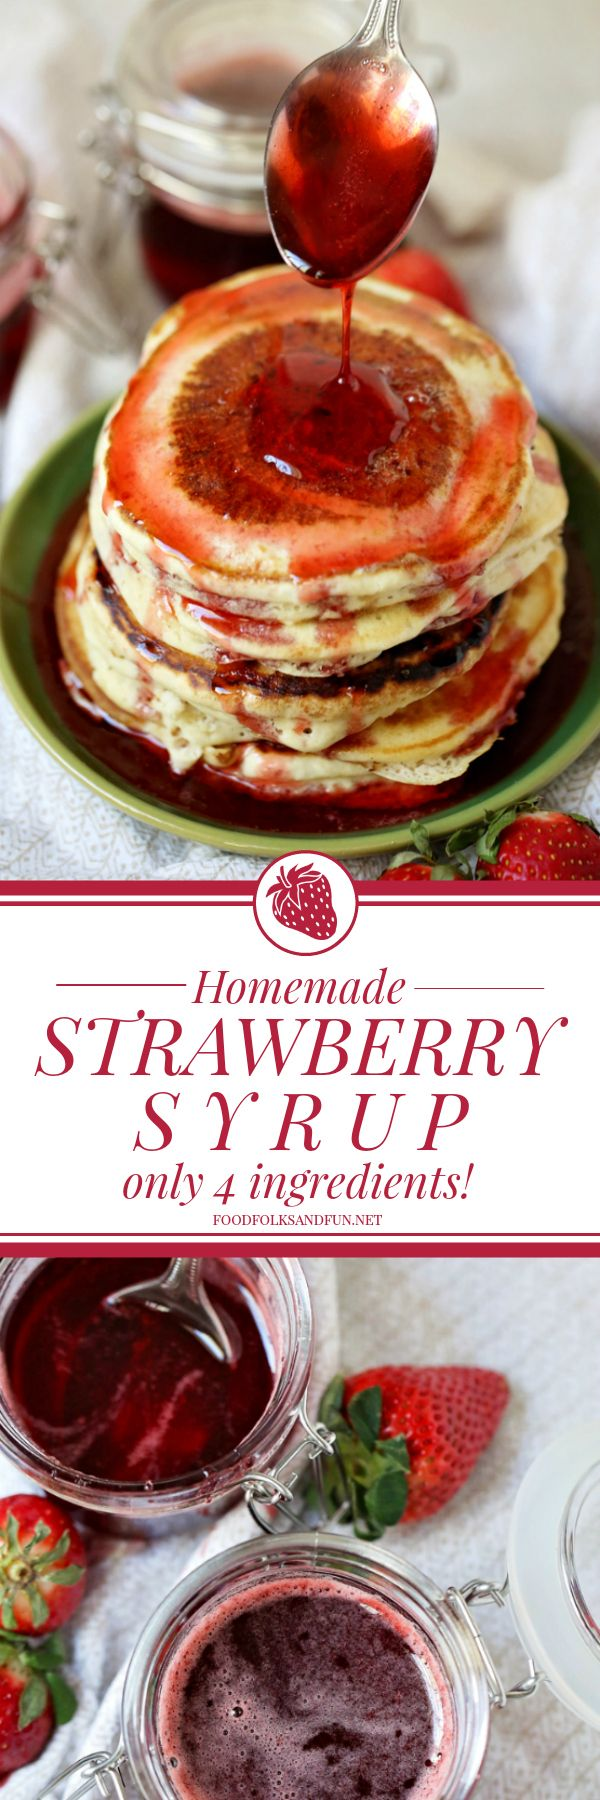 Move over IHOP! My strawberry syrup is SO easy to make, and it takes only 4 INGREDIENTS! It's perfect for pouring over the top of a big stack of pancakes or for making STRAWBERRY MILK!